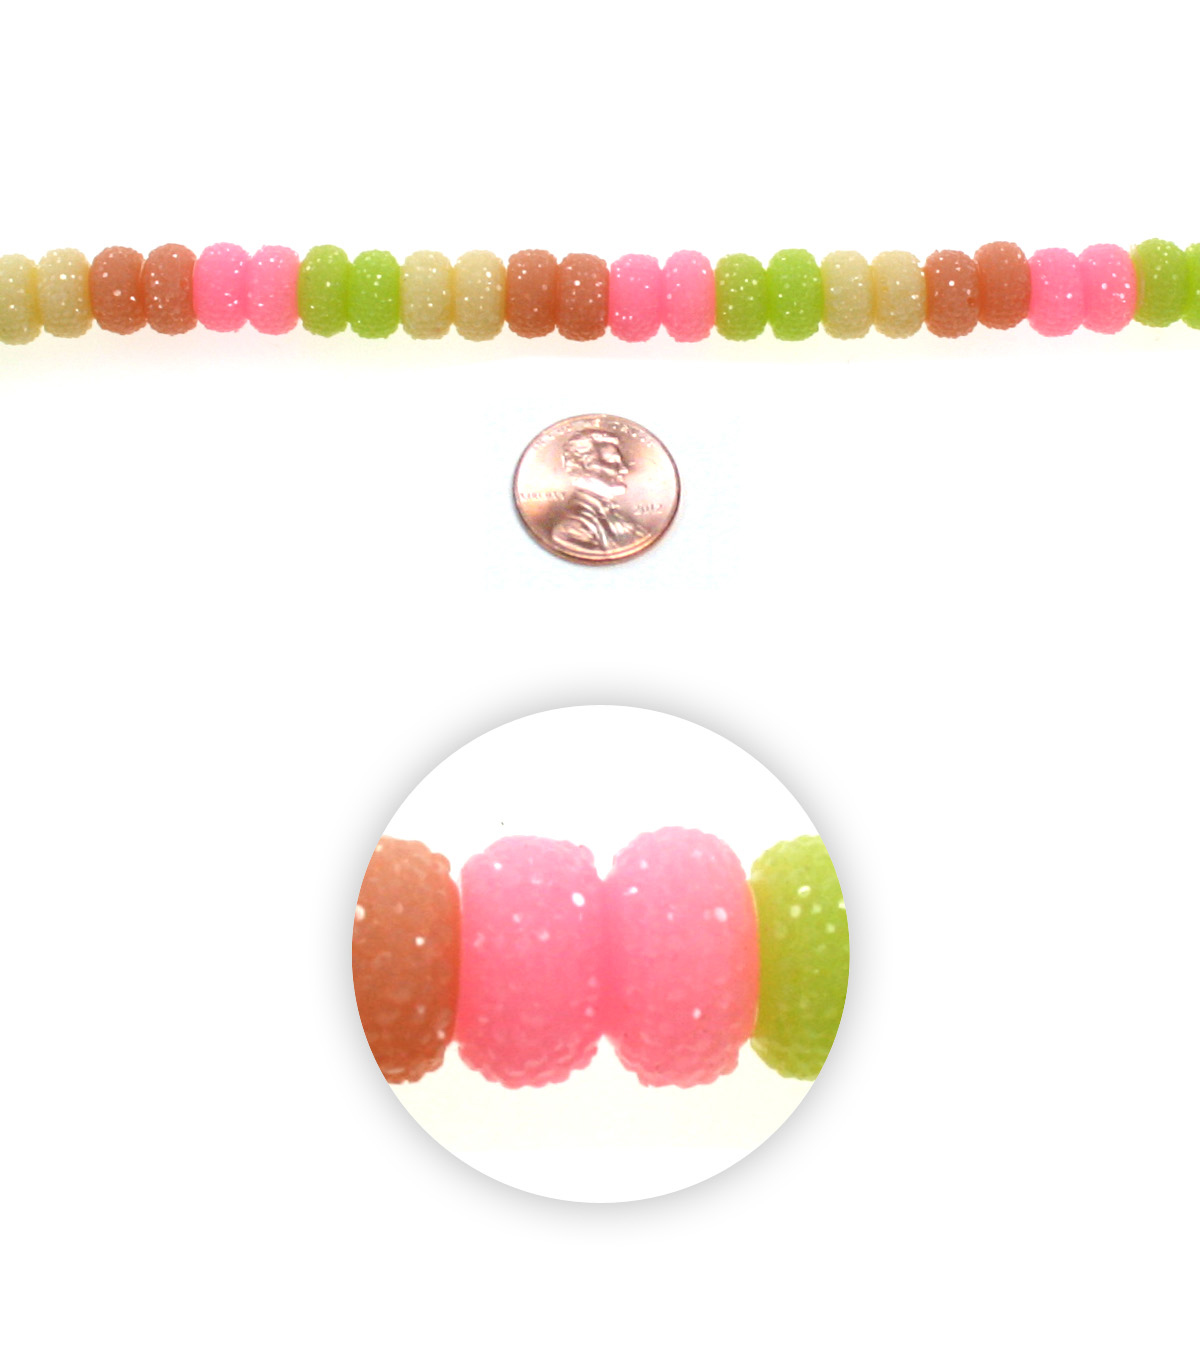 Advantus/Sulyn 7 in Sugar Rush Sparkle Bead Strand, Fruity Light